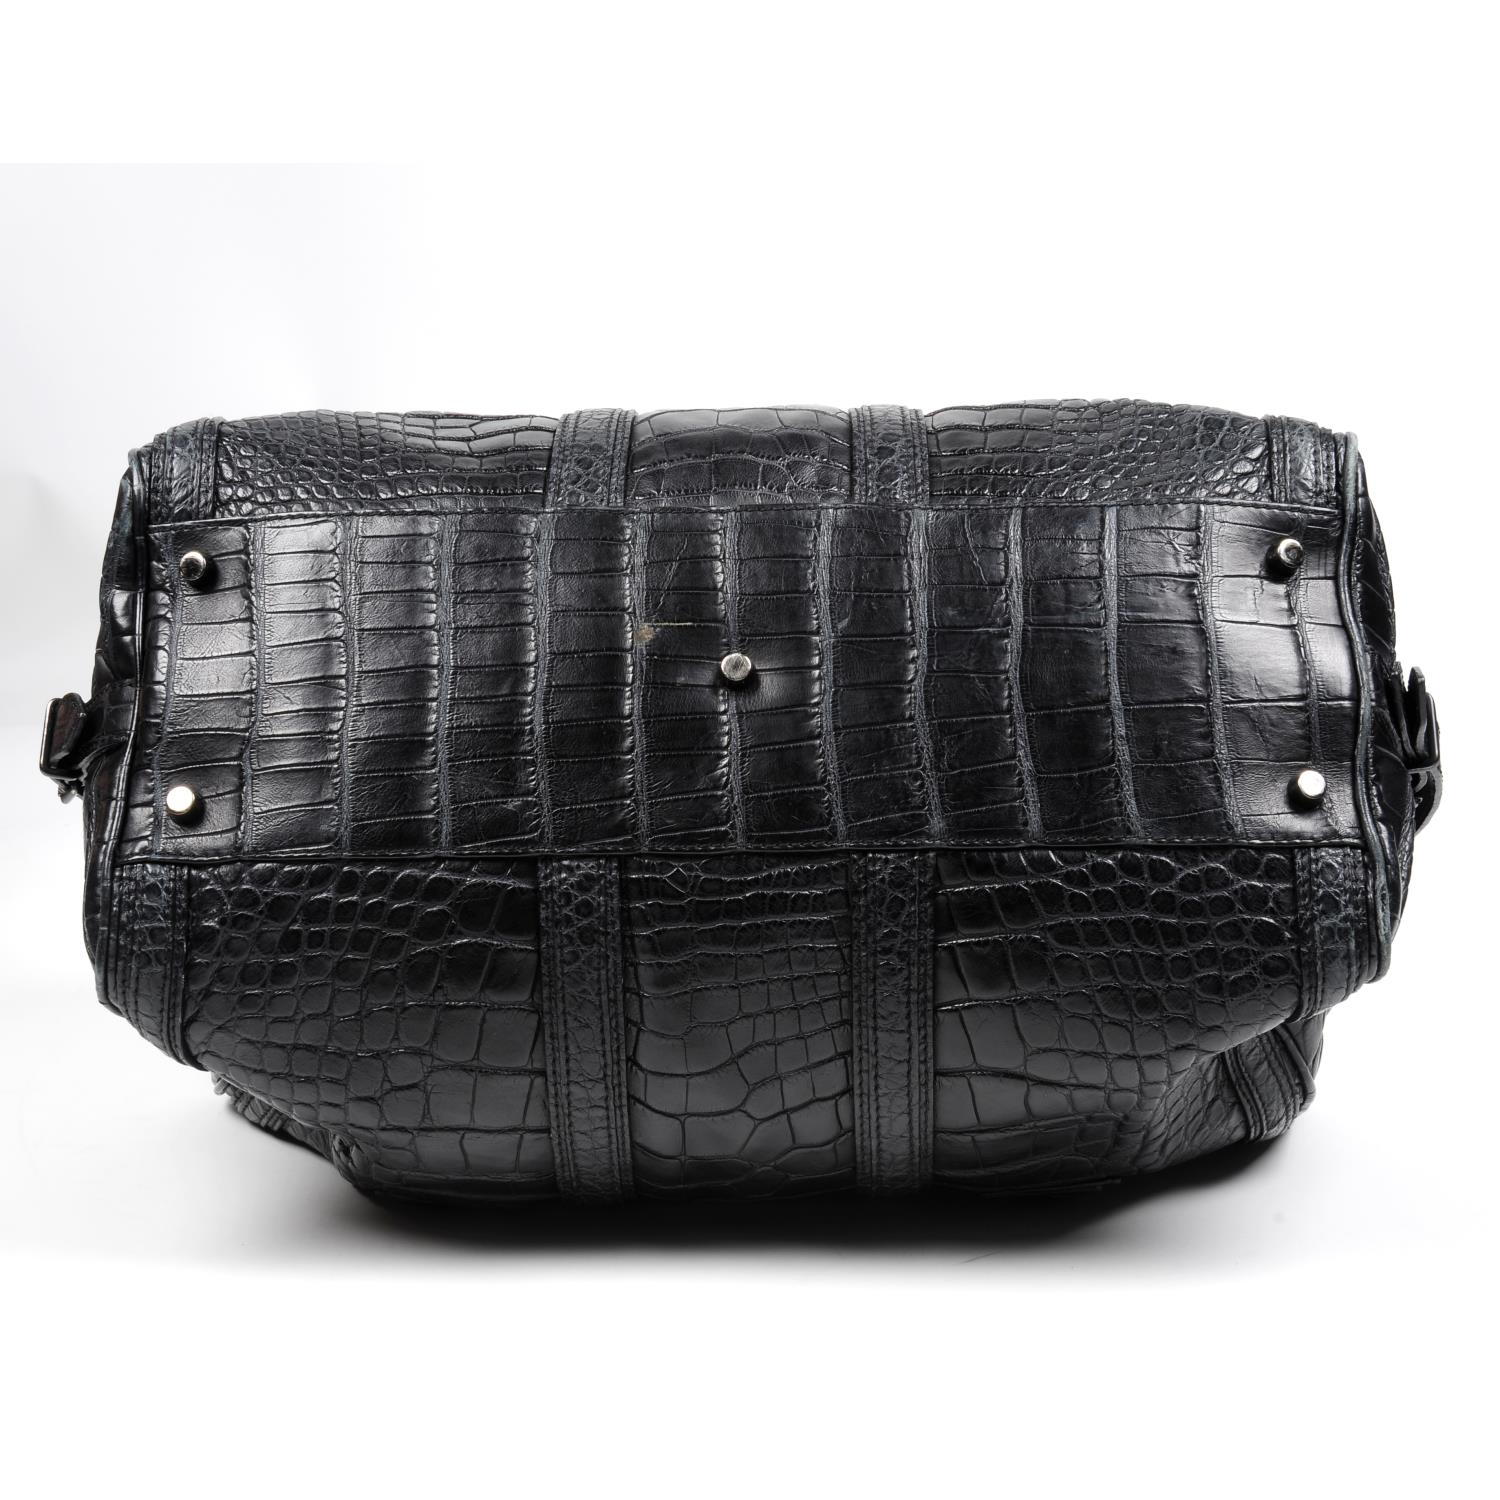 Lot 13 - BURBERRY - a dark navy alligator holdall travel bag.